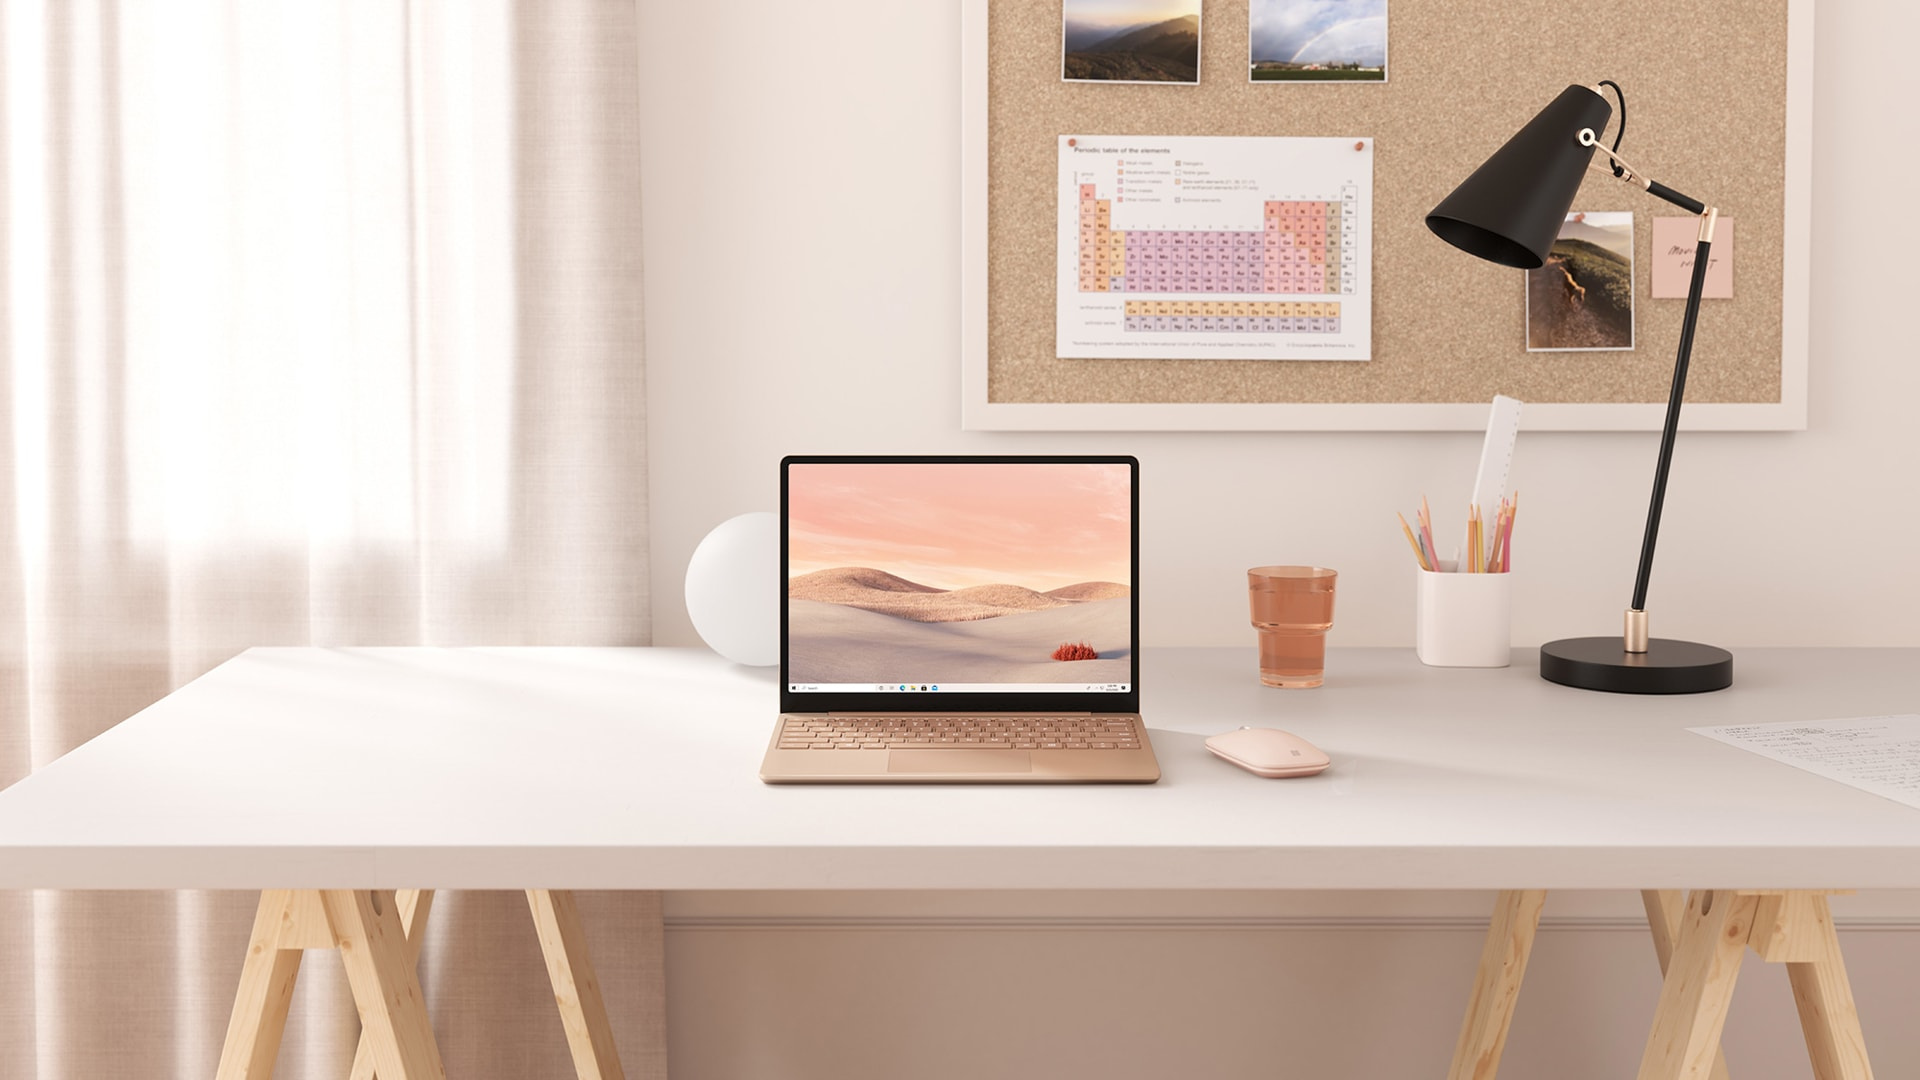 沙岩色 Surface Laptop Go 在桌上